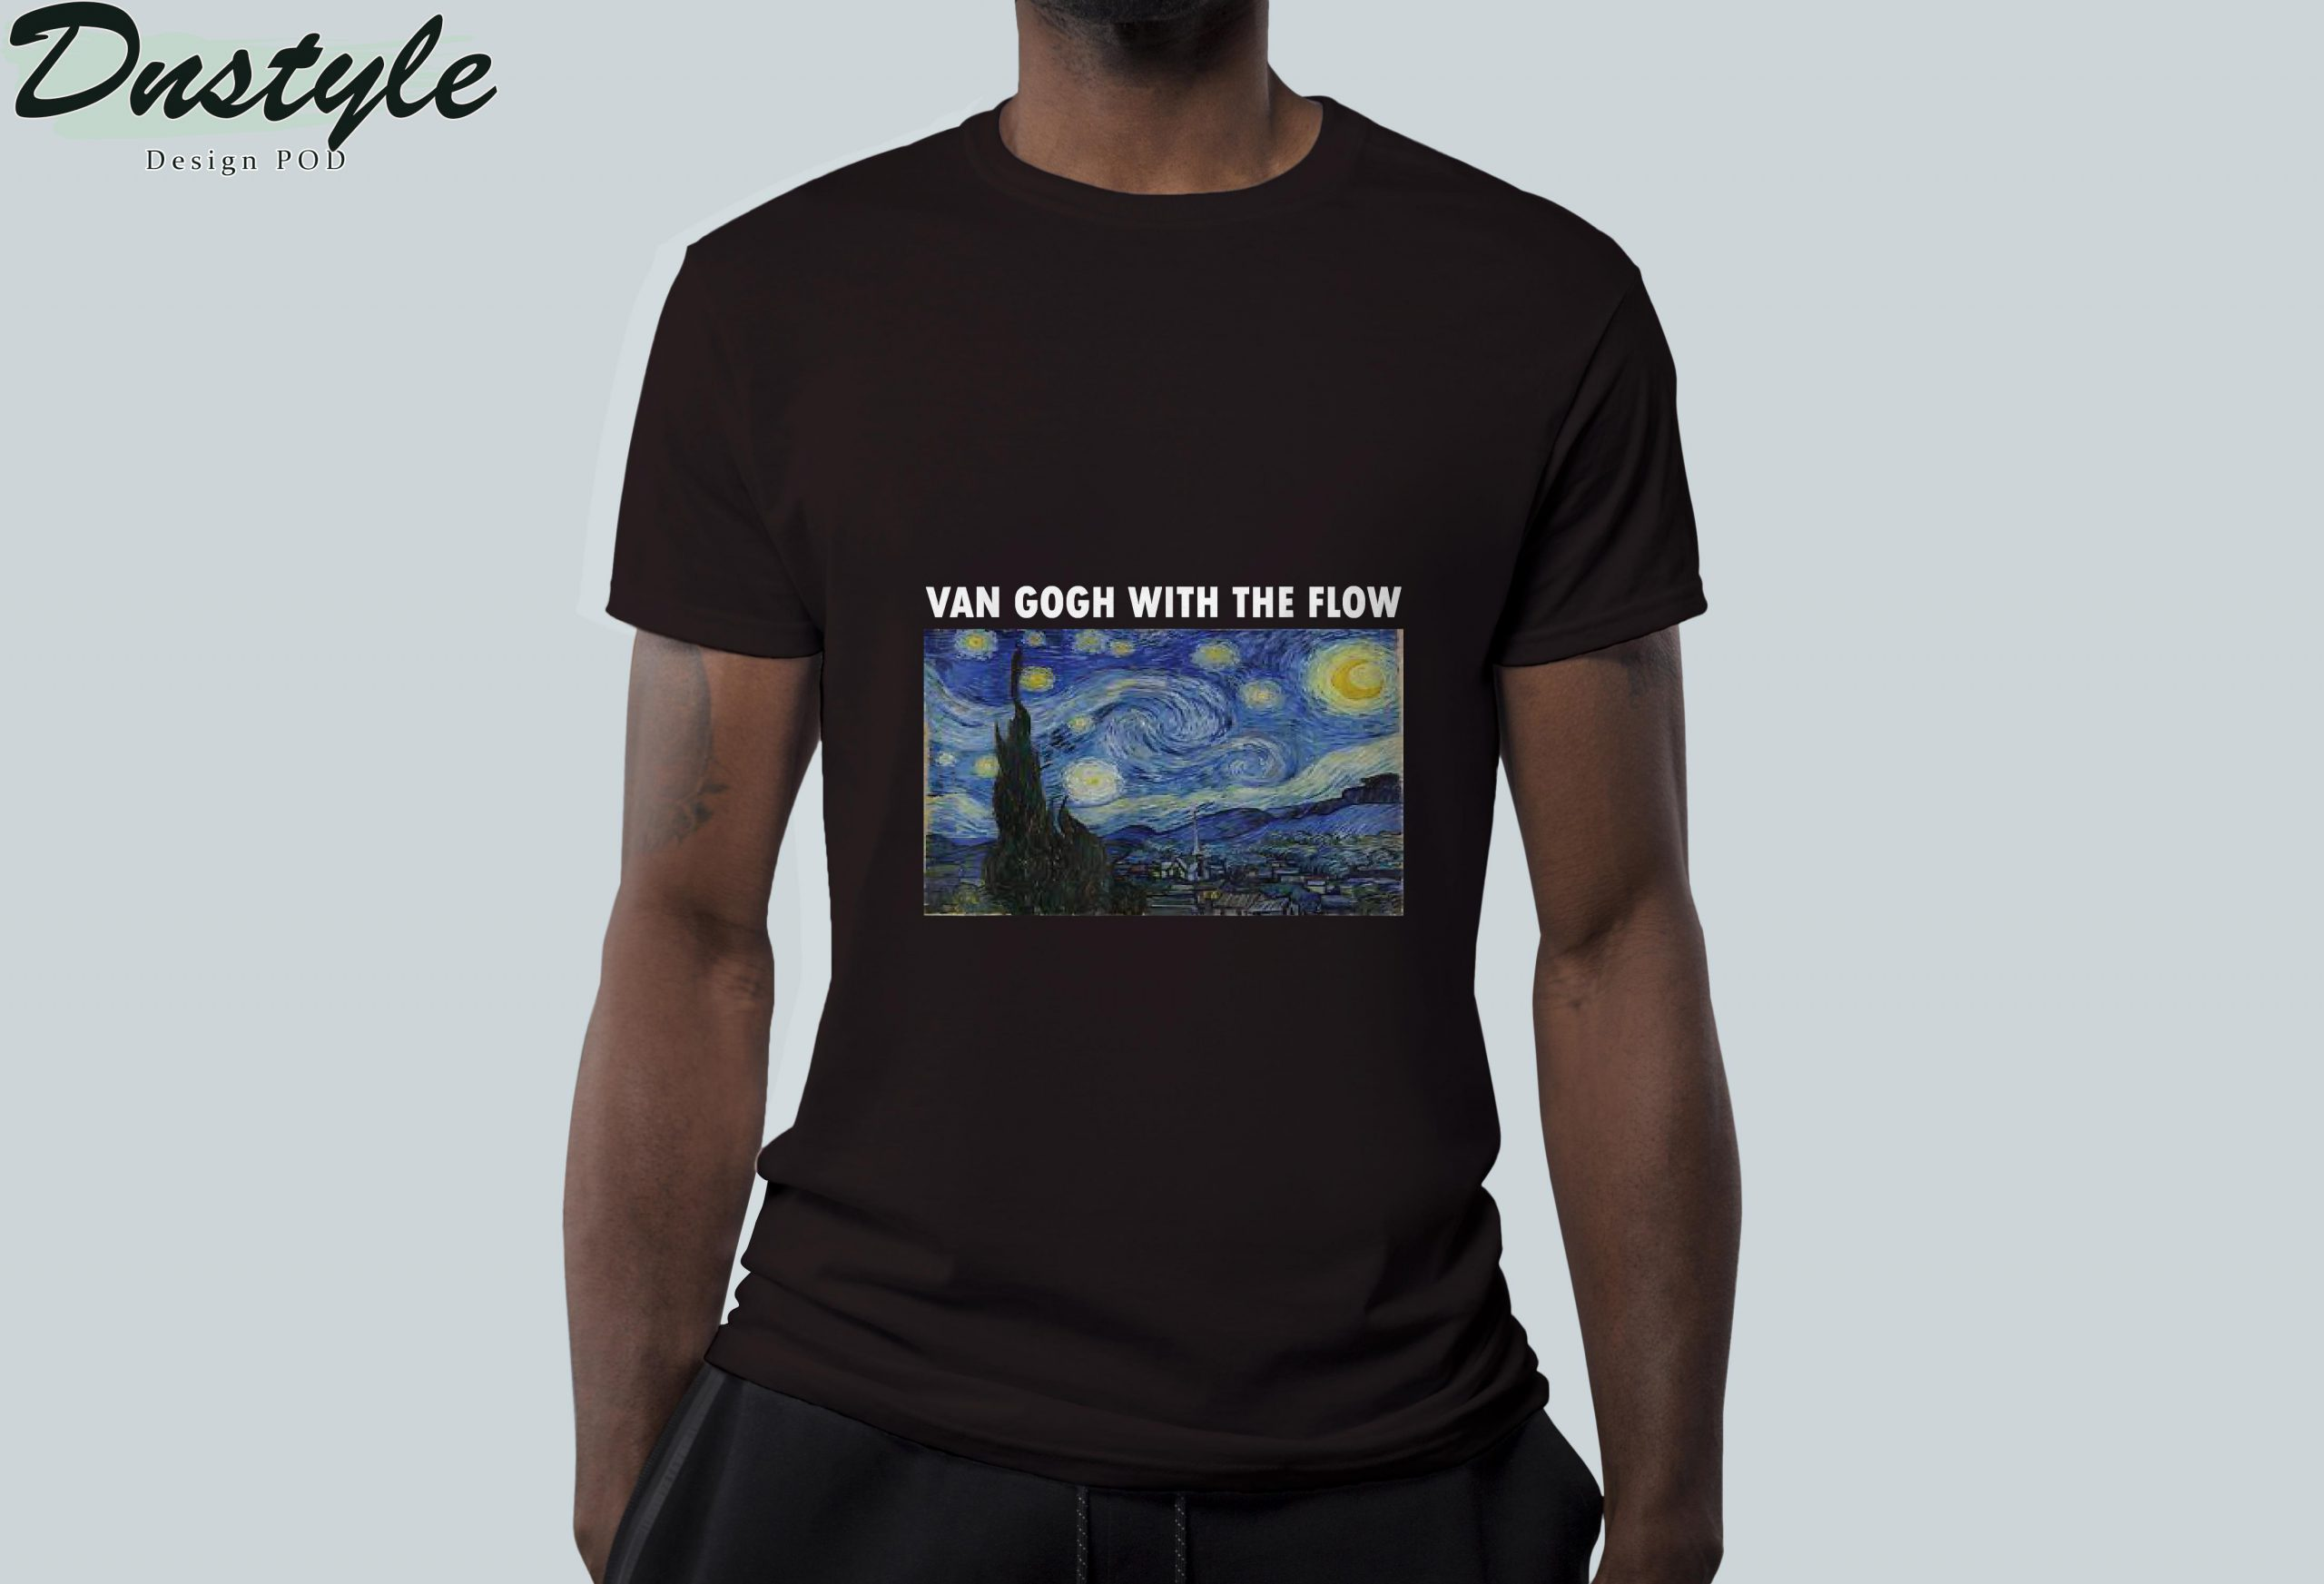 Van gogh with the flow t-shirt 2